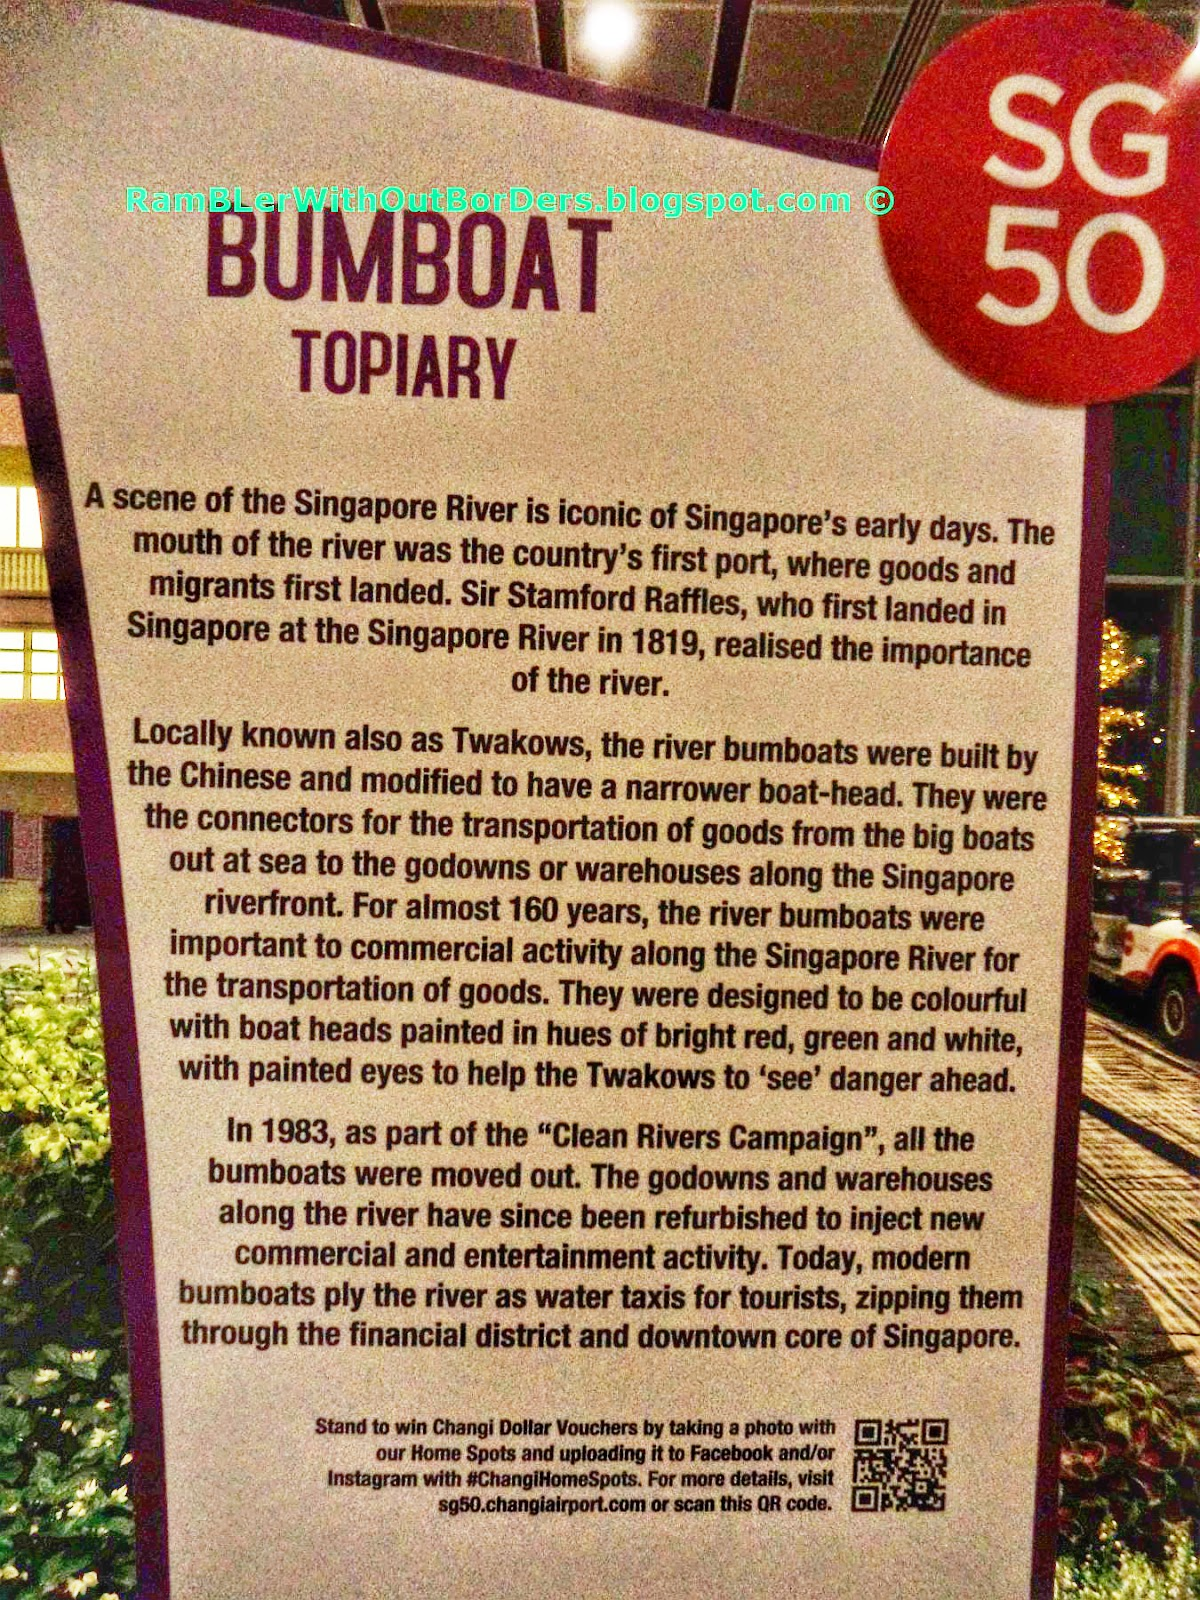 Explanation board, Bumboat topiary exhibit, Departure Hall, T3, Changi Airport, Singapore